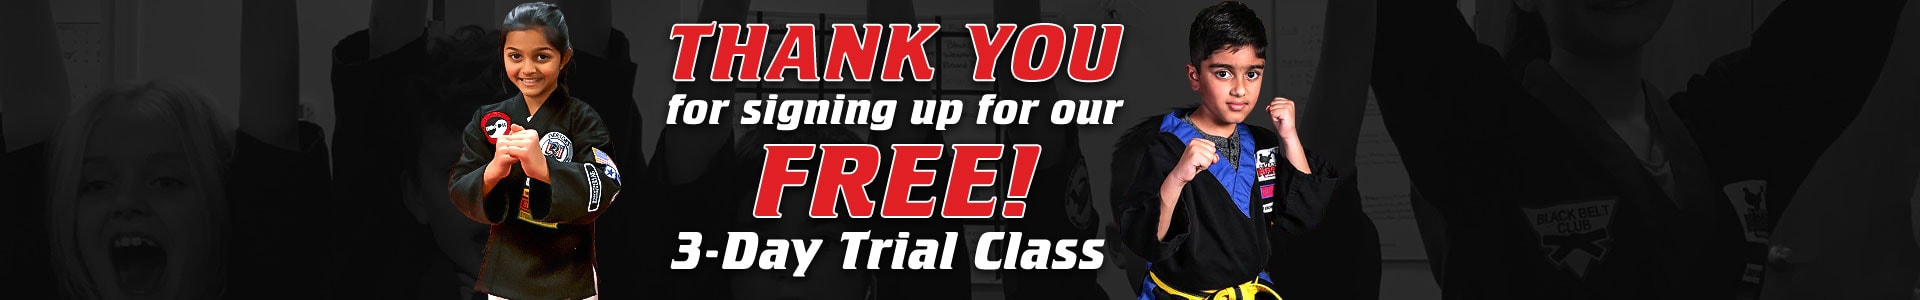 3 Day Free Trail Karate Class At Everson's Karate